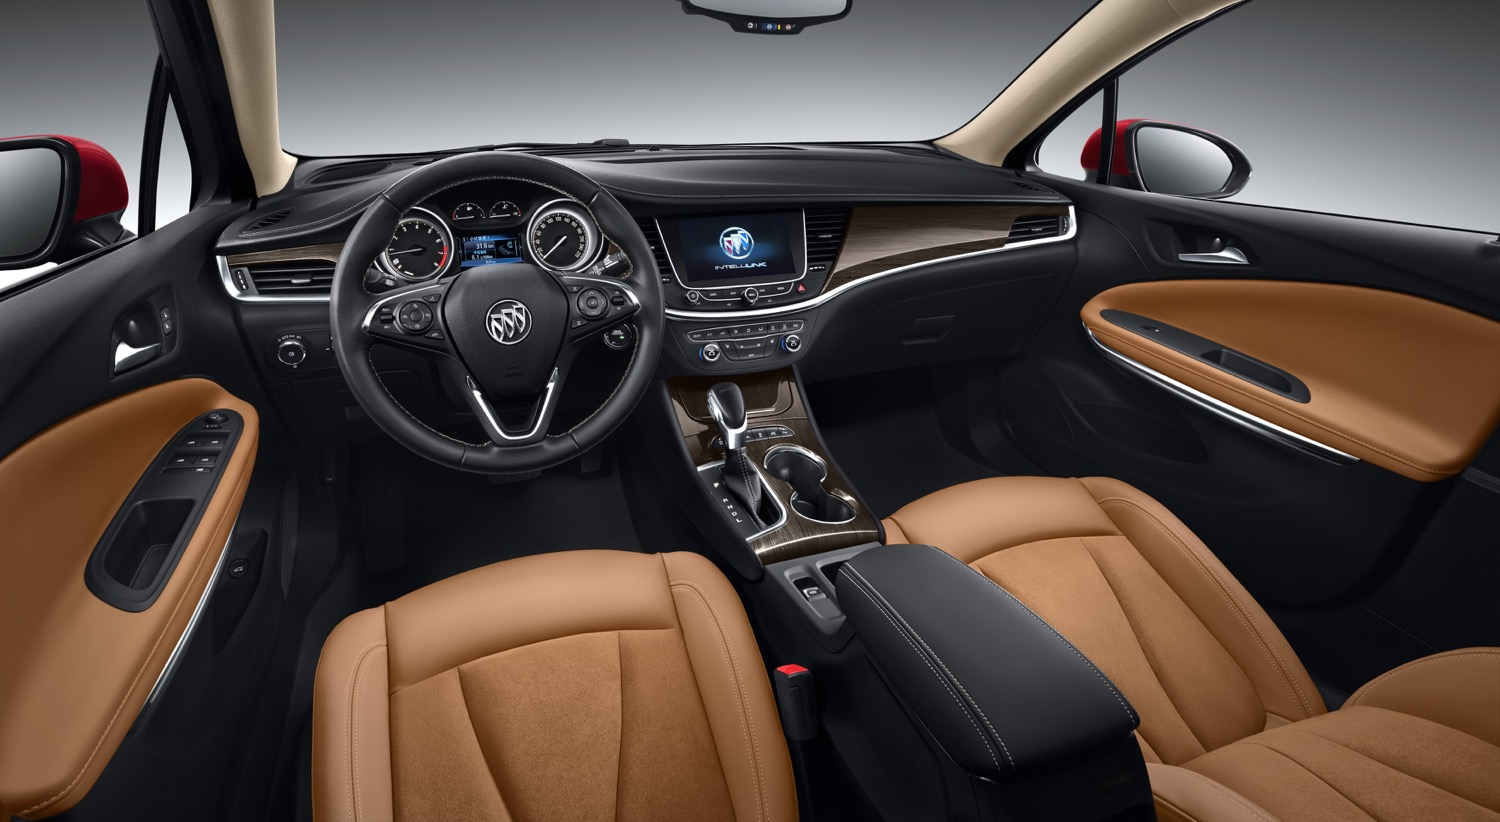 2016 Buick Verano D2Xx Info, Specs, Pictures | Gm Authority 2021 Buick Verano Length, Images, Manual Transmission